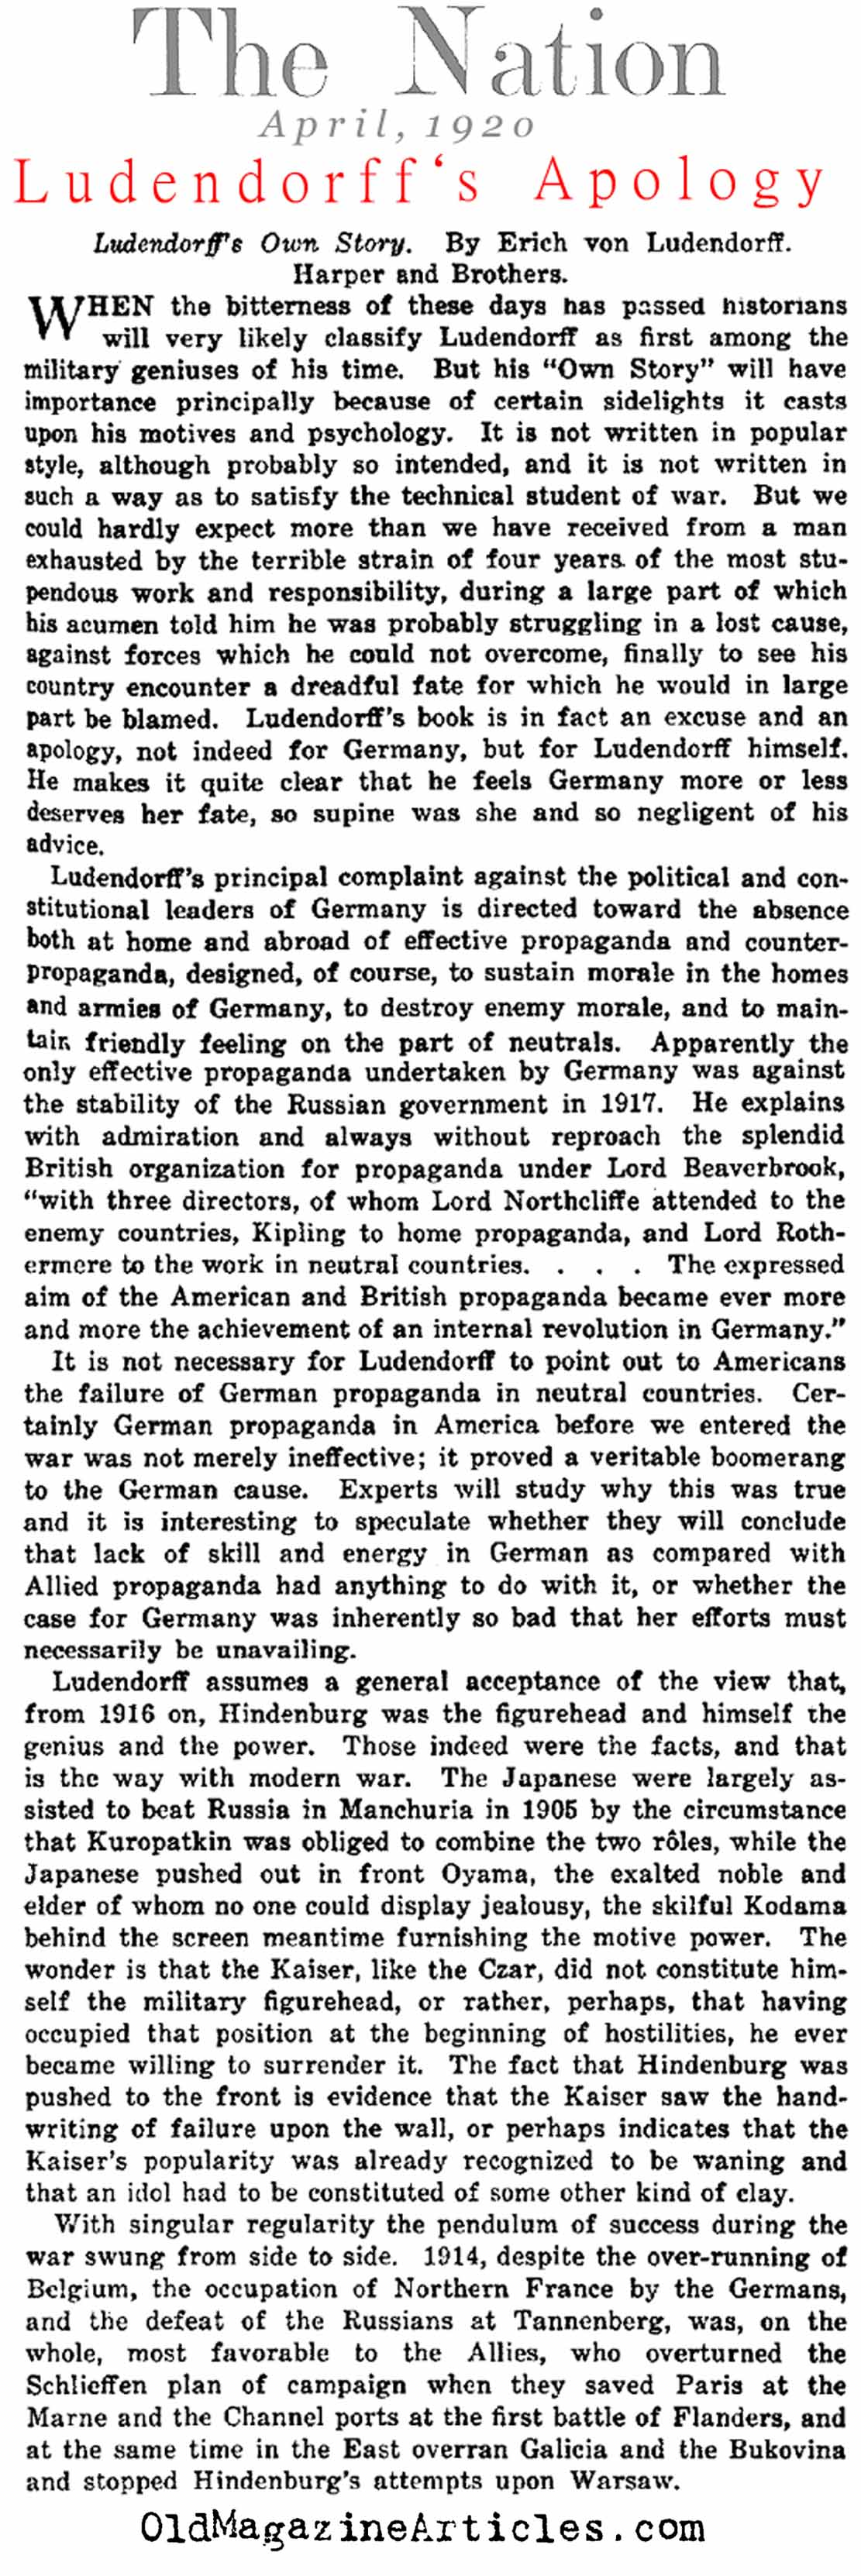 Ludendorff's Apology (The Nation, 1920)